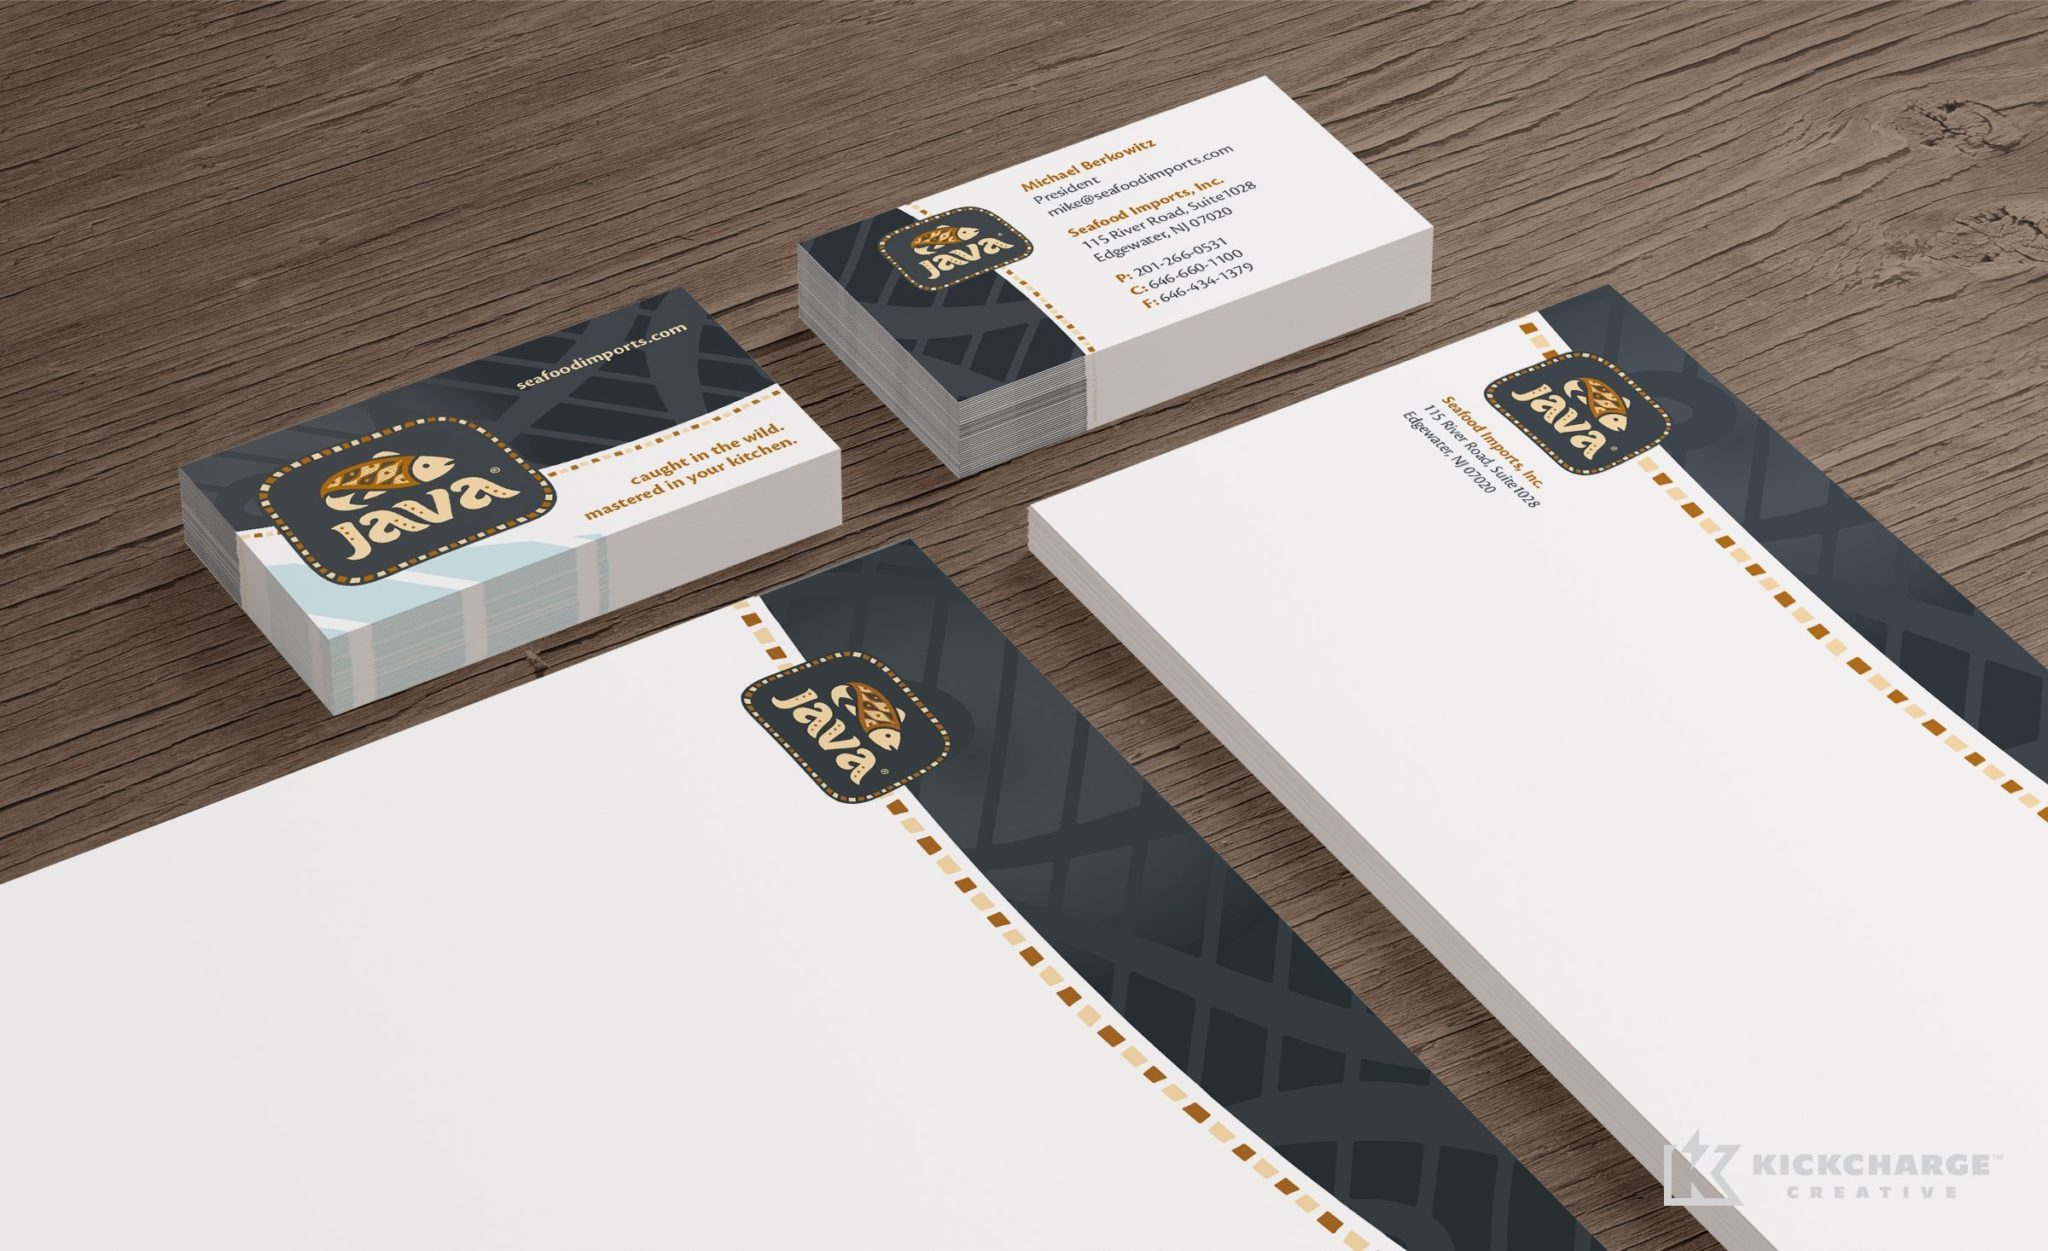 Stationery design for importer and distributor of specialty seafood products, located in New Jersey.